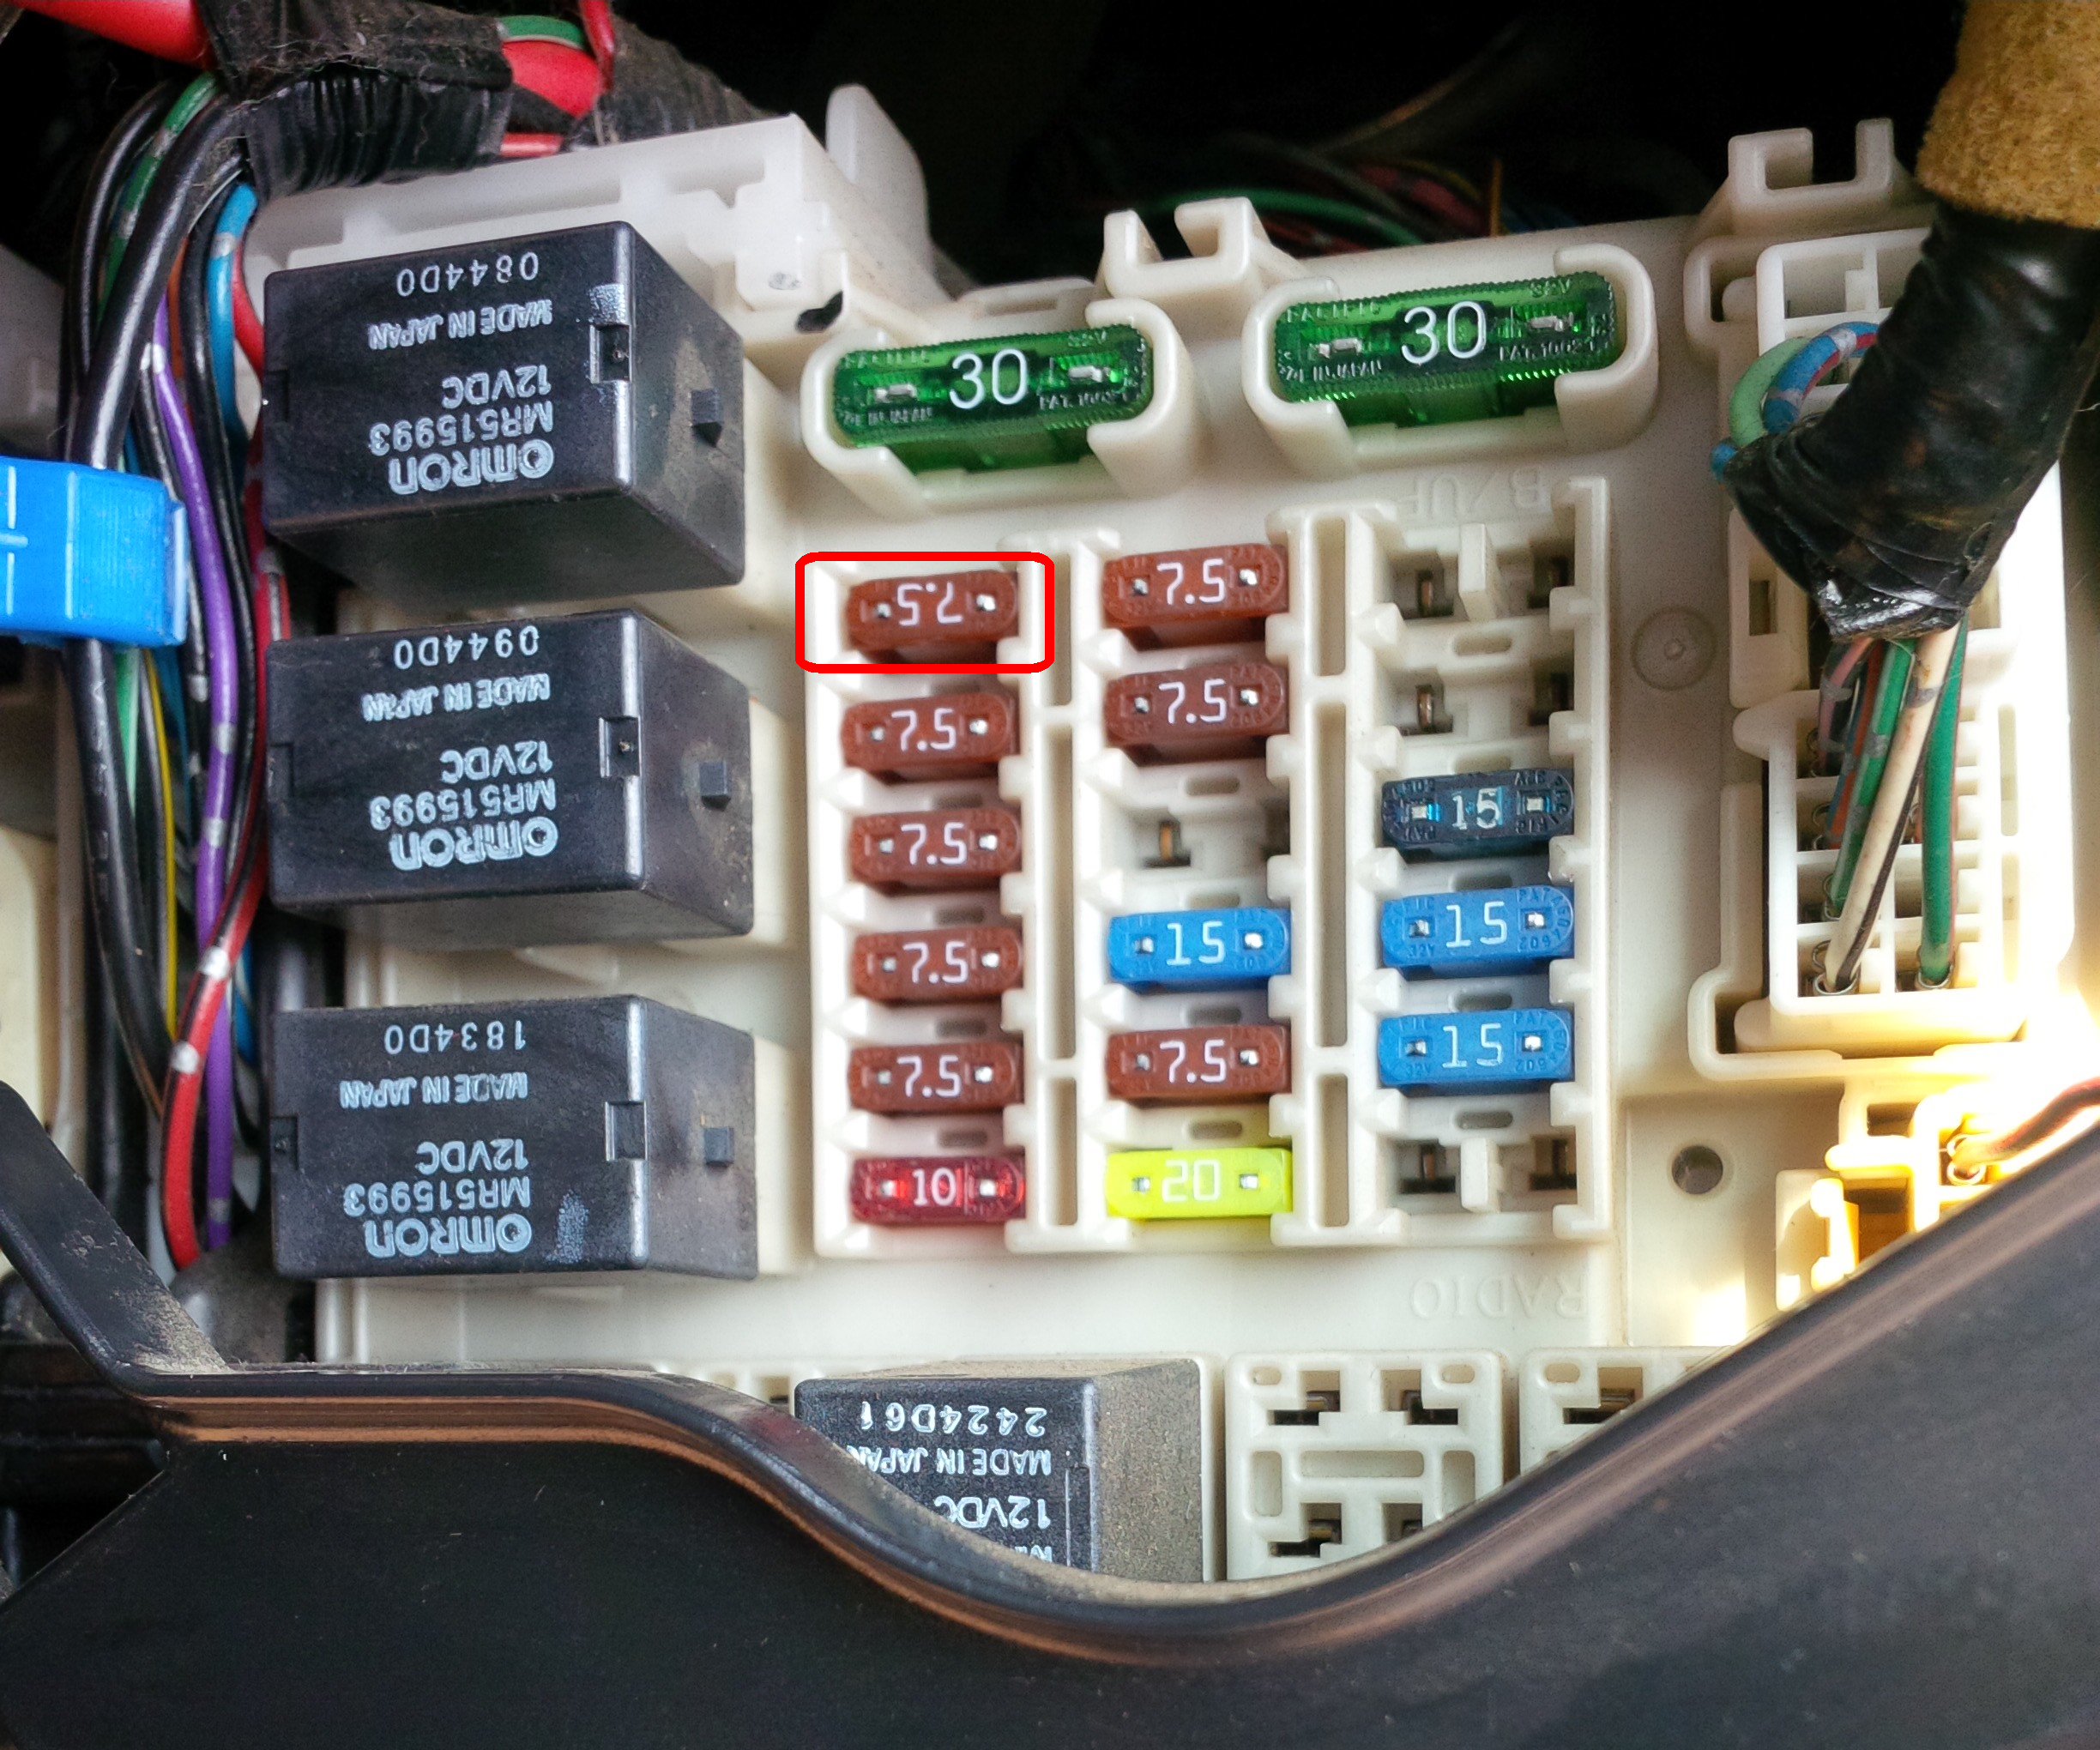 emy_479] 2004 mitsubishi endeavor fuse box | cabling-produce wiring diagram  option | cabling-produce.confort-satisfaction.fr  confort satisfaction